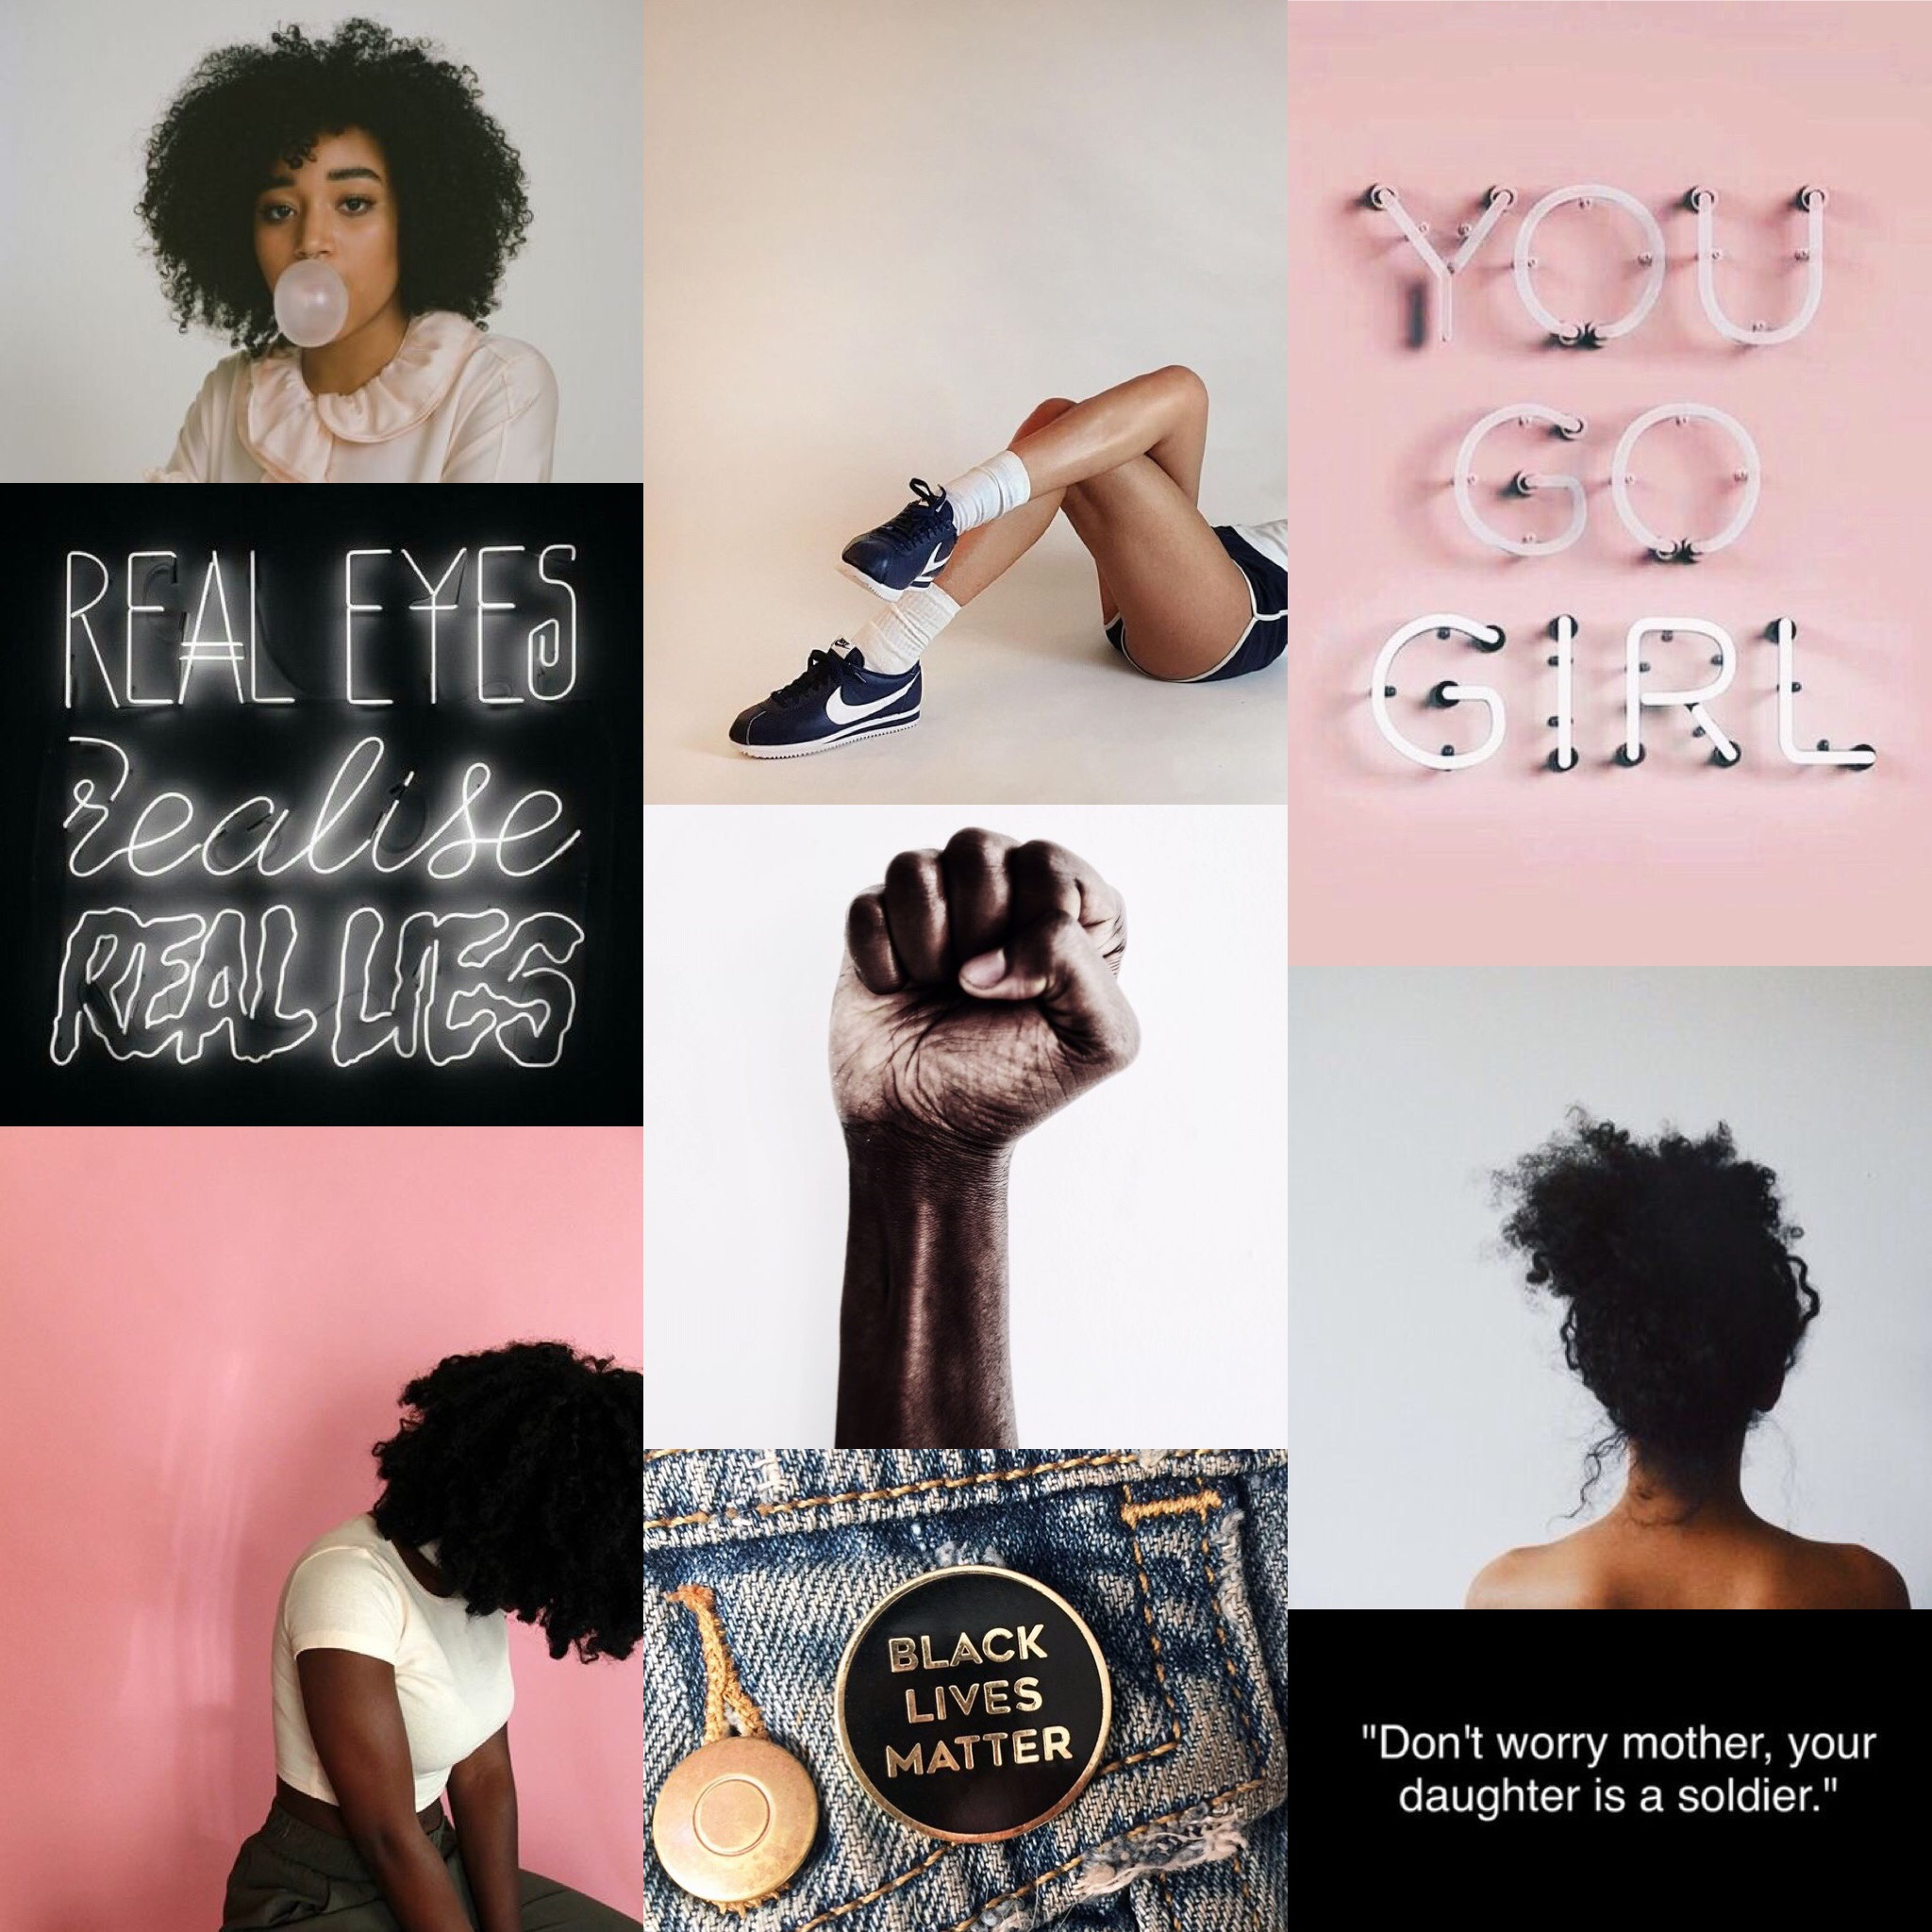 Read my review of The Hate U Give by Angie Thomas.